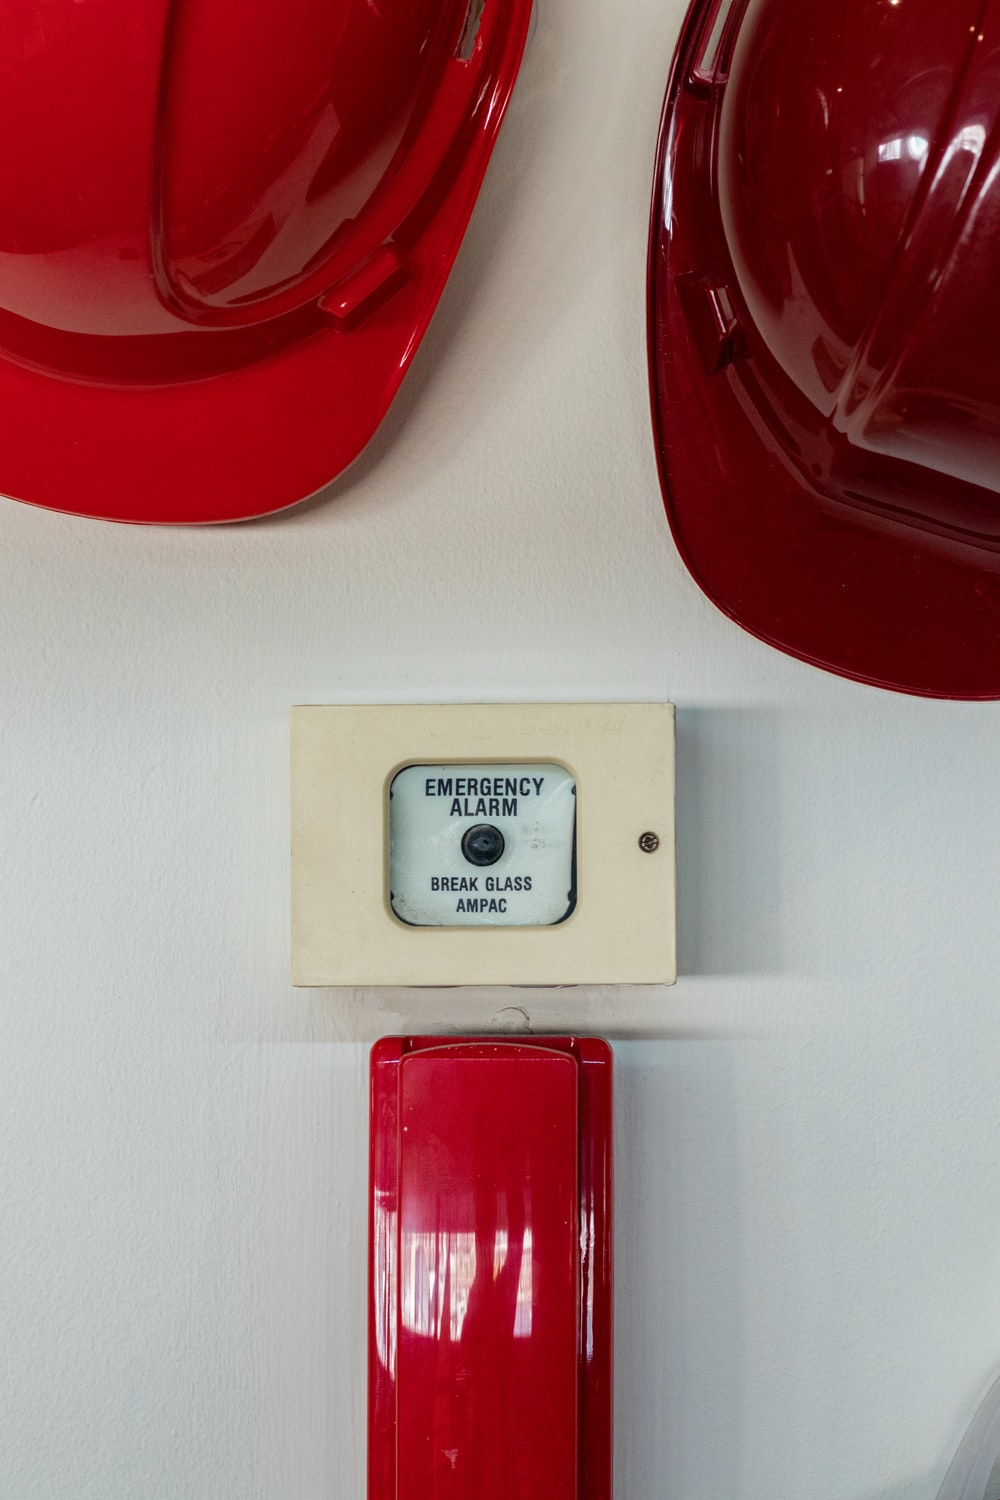 two red hard hats near emergency alarm button